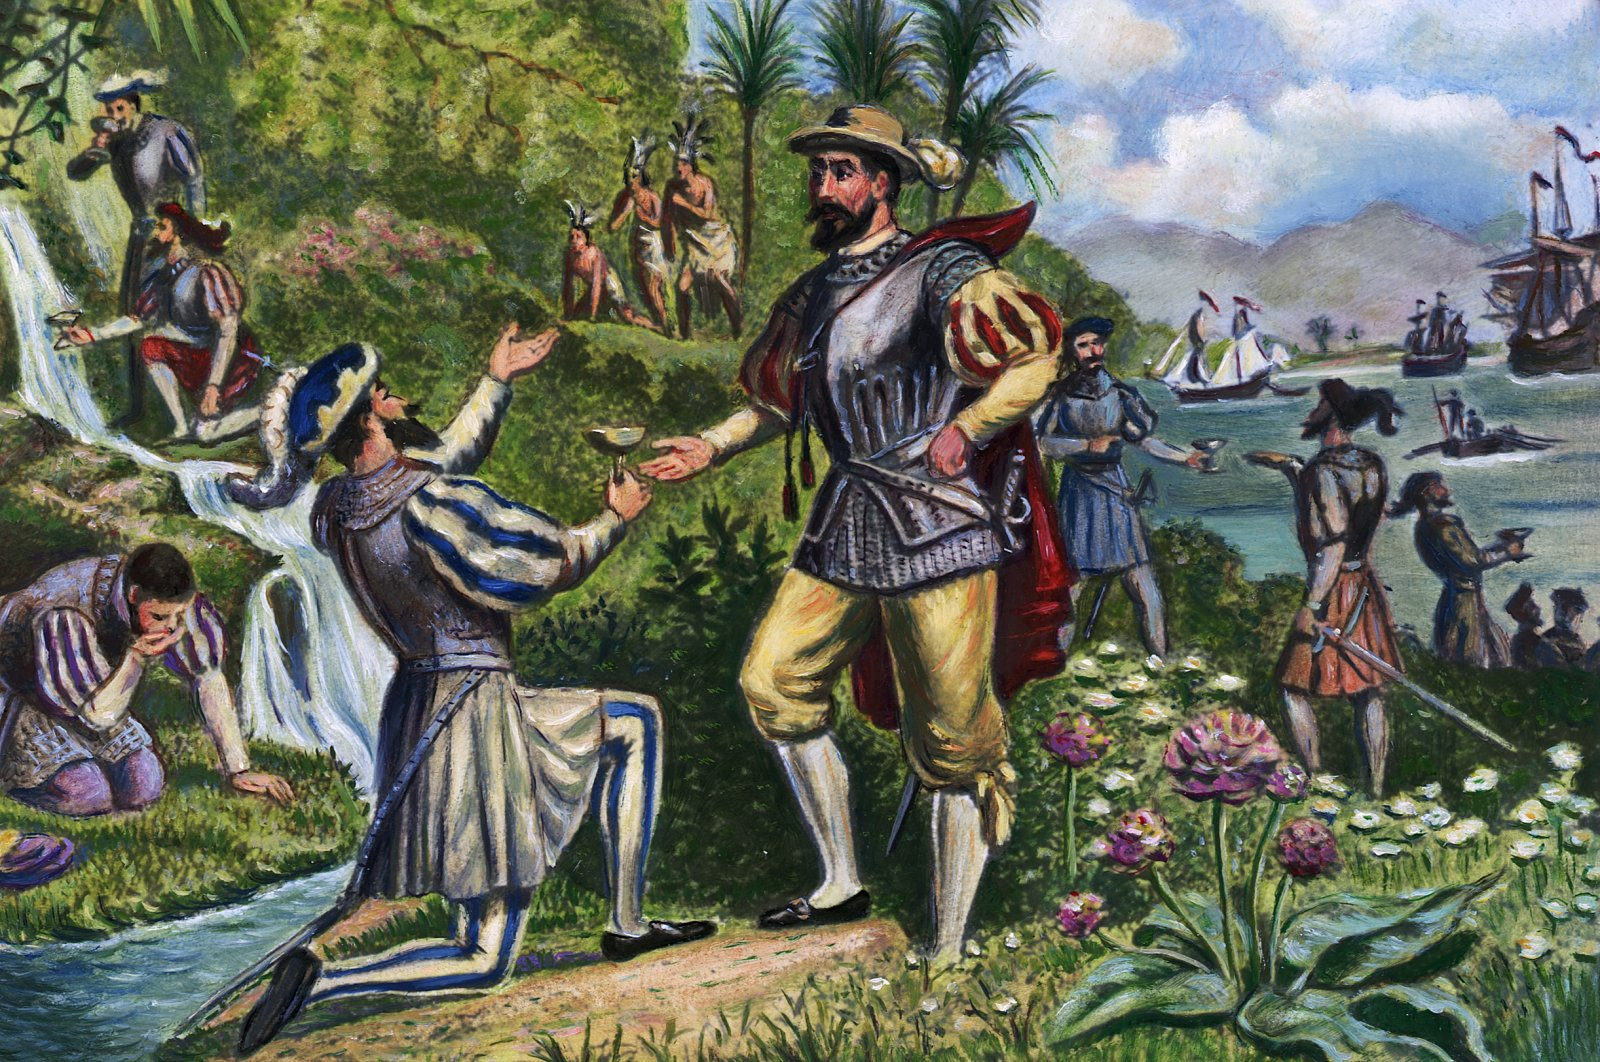 """An illustration shows a scene in which Spanish explorer and conquistador Ponce de Leon is given water from the """"Fountain of Youth."""" (Getty Images)"""